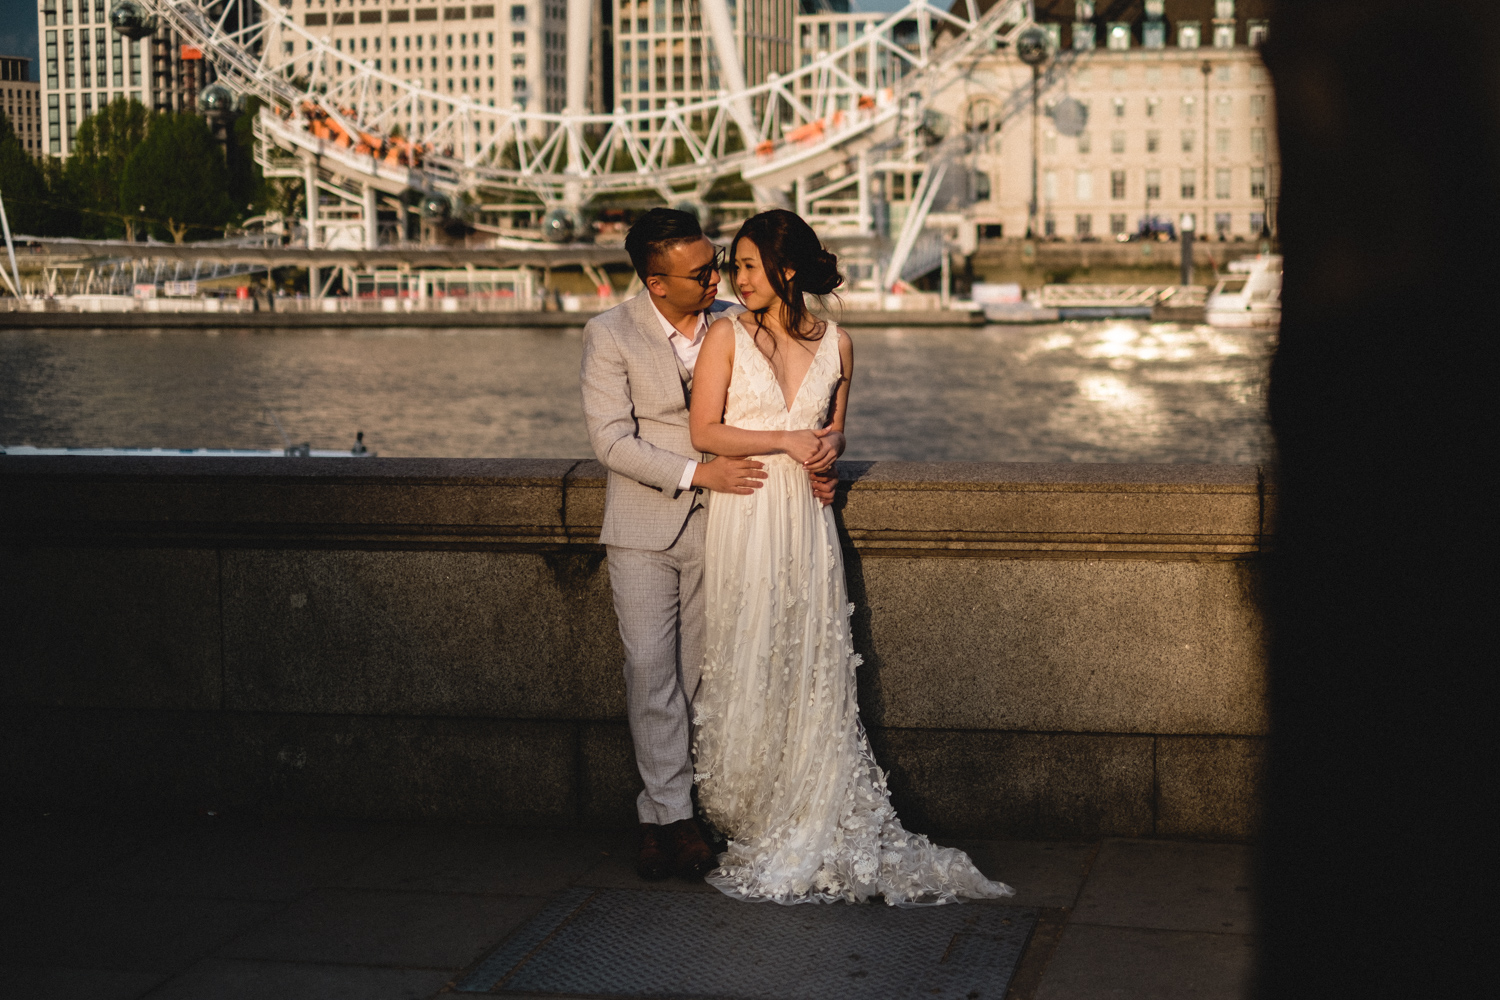 London pre-wedding photos - London Eye